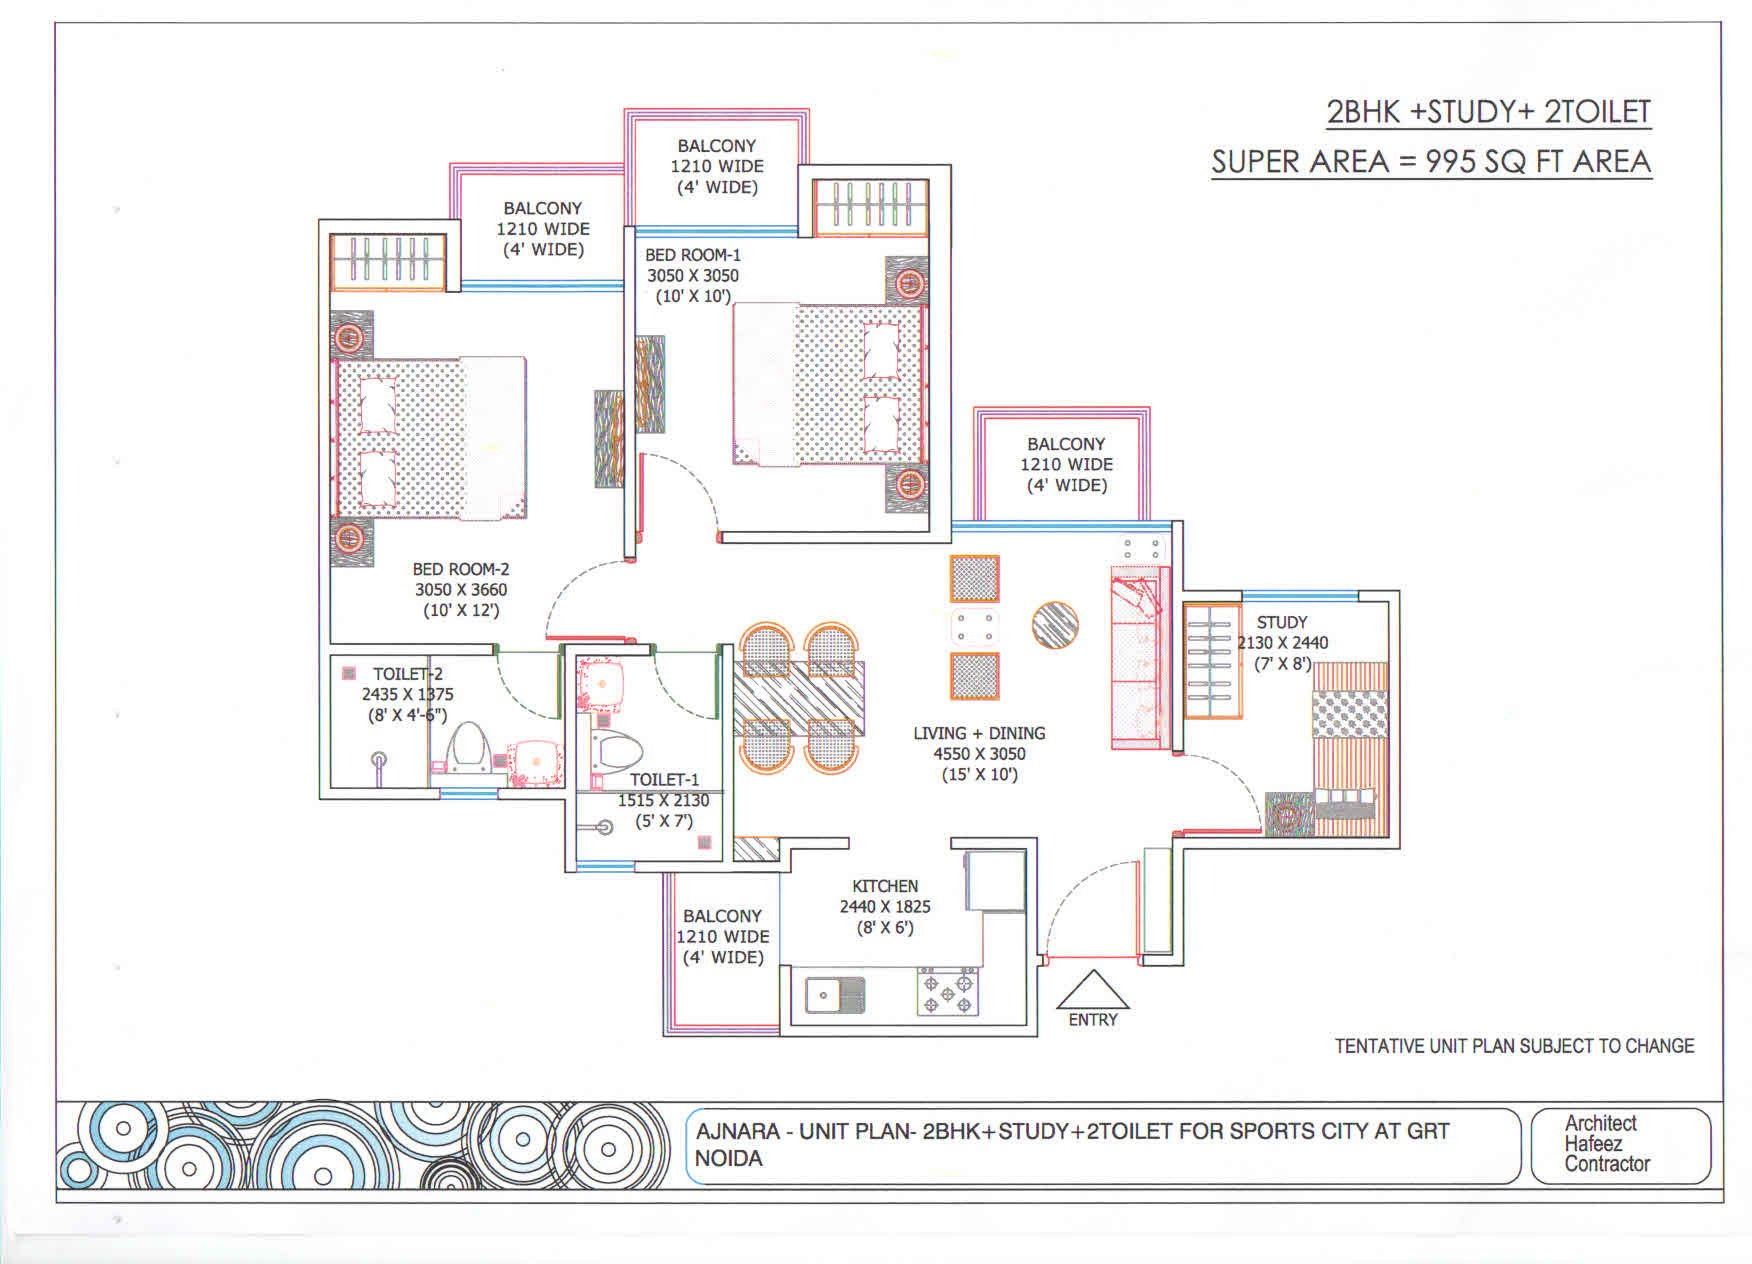 Ajnara Sports City floor plan 2bhk 2toilet 995 sqft